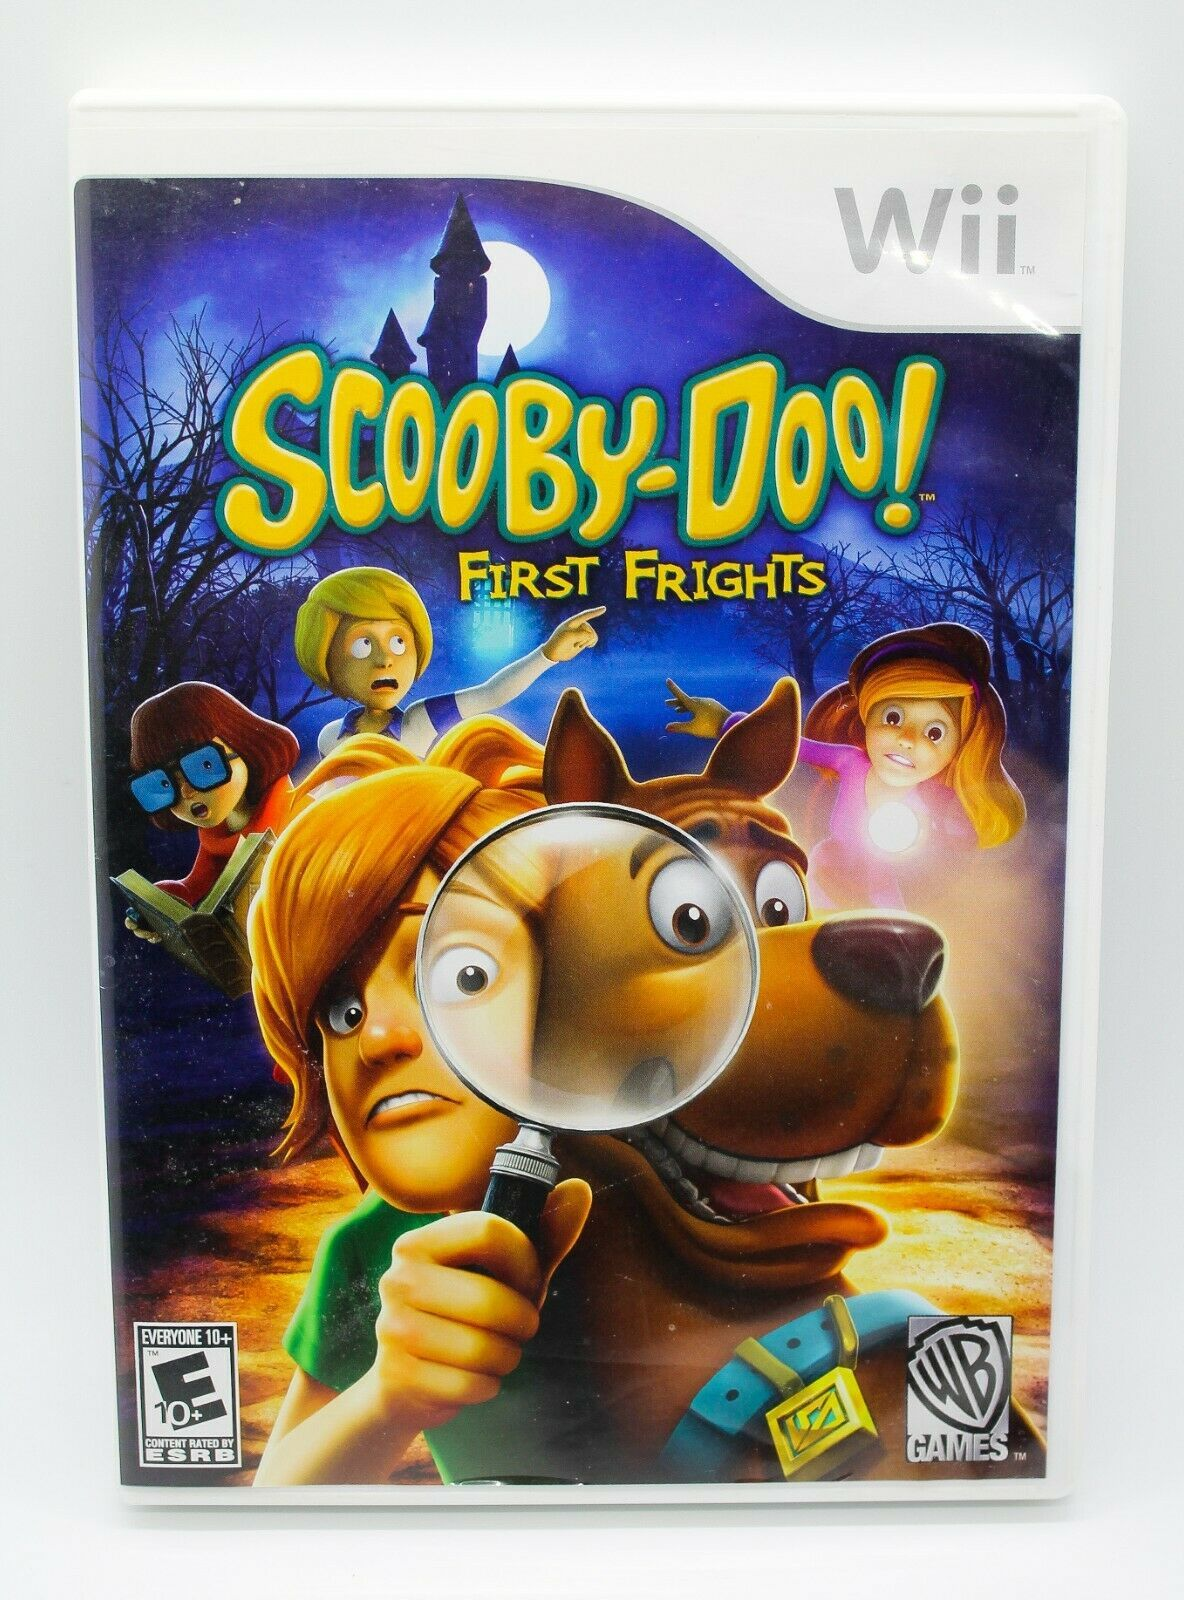 Details about ScoobyDoo First Frights (Nintendo Wii, 2009